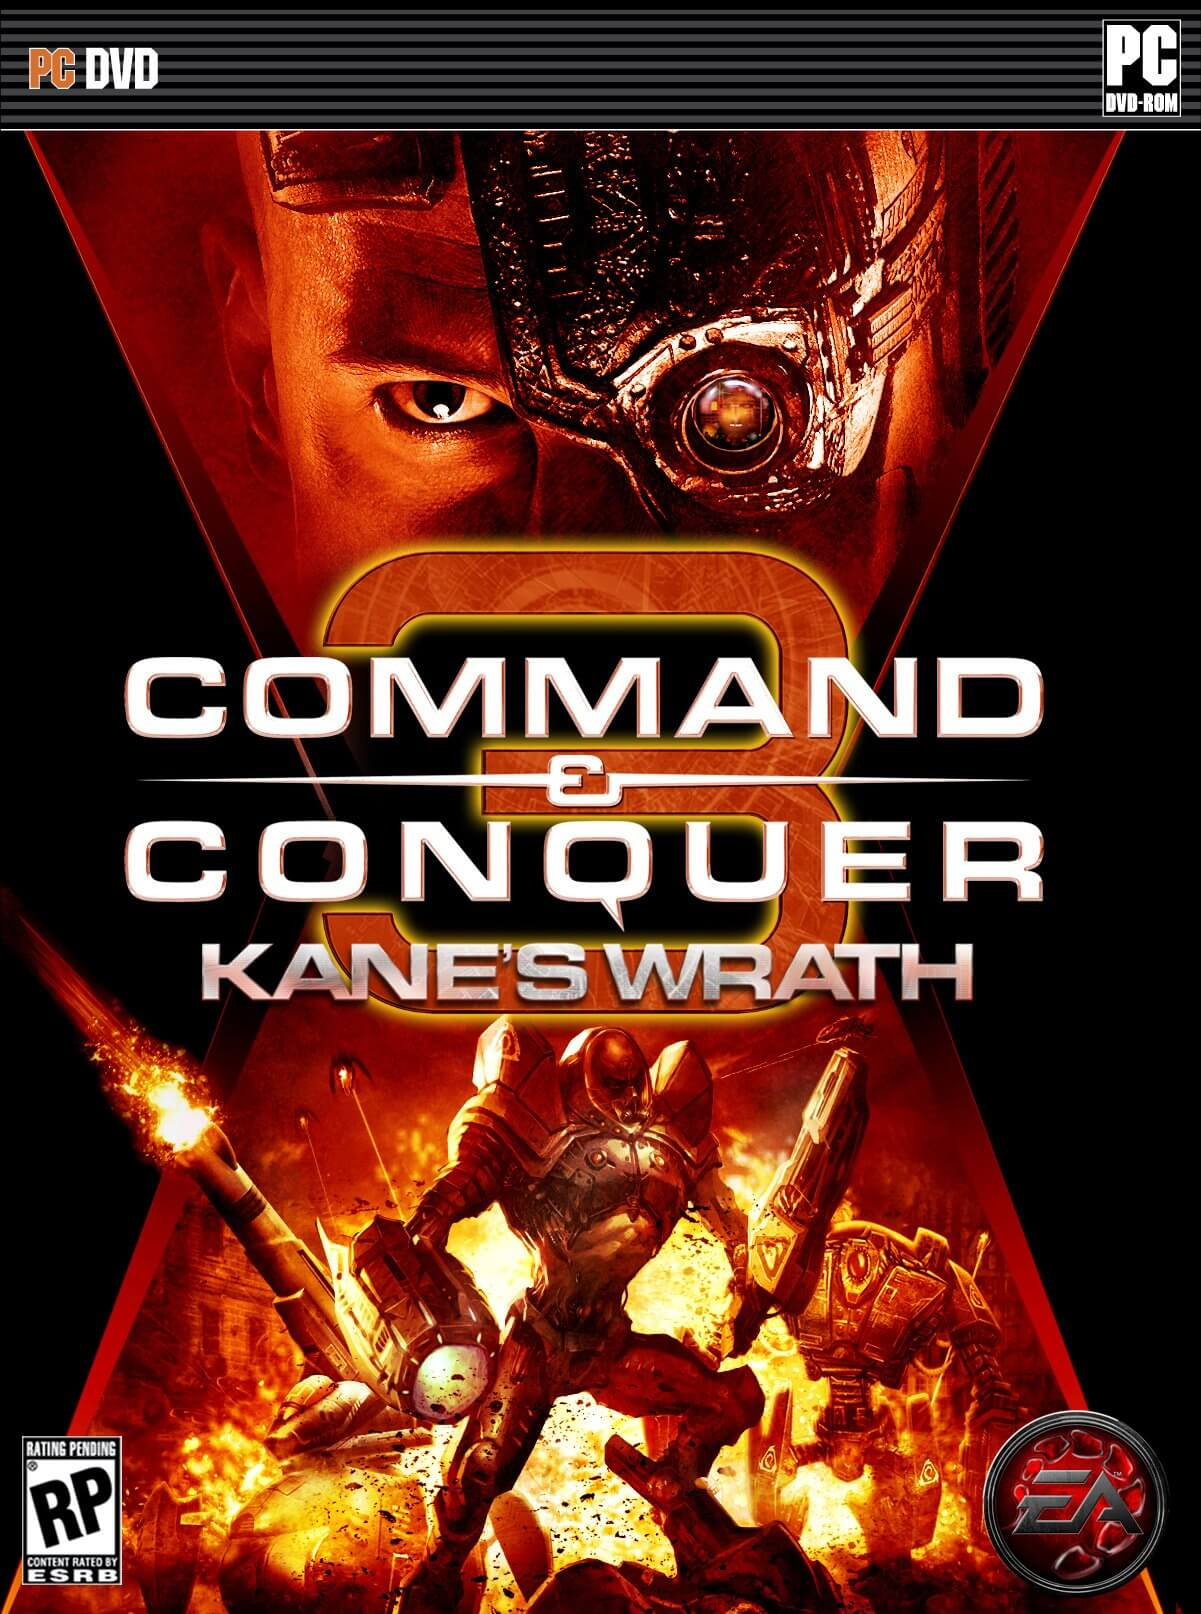 https://img5.downloadha.com/hosein/files/2019/05/Command-and-Conquer-3-Kanes-Wrath-pc-cover-large.jpg